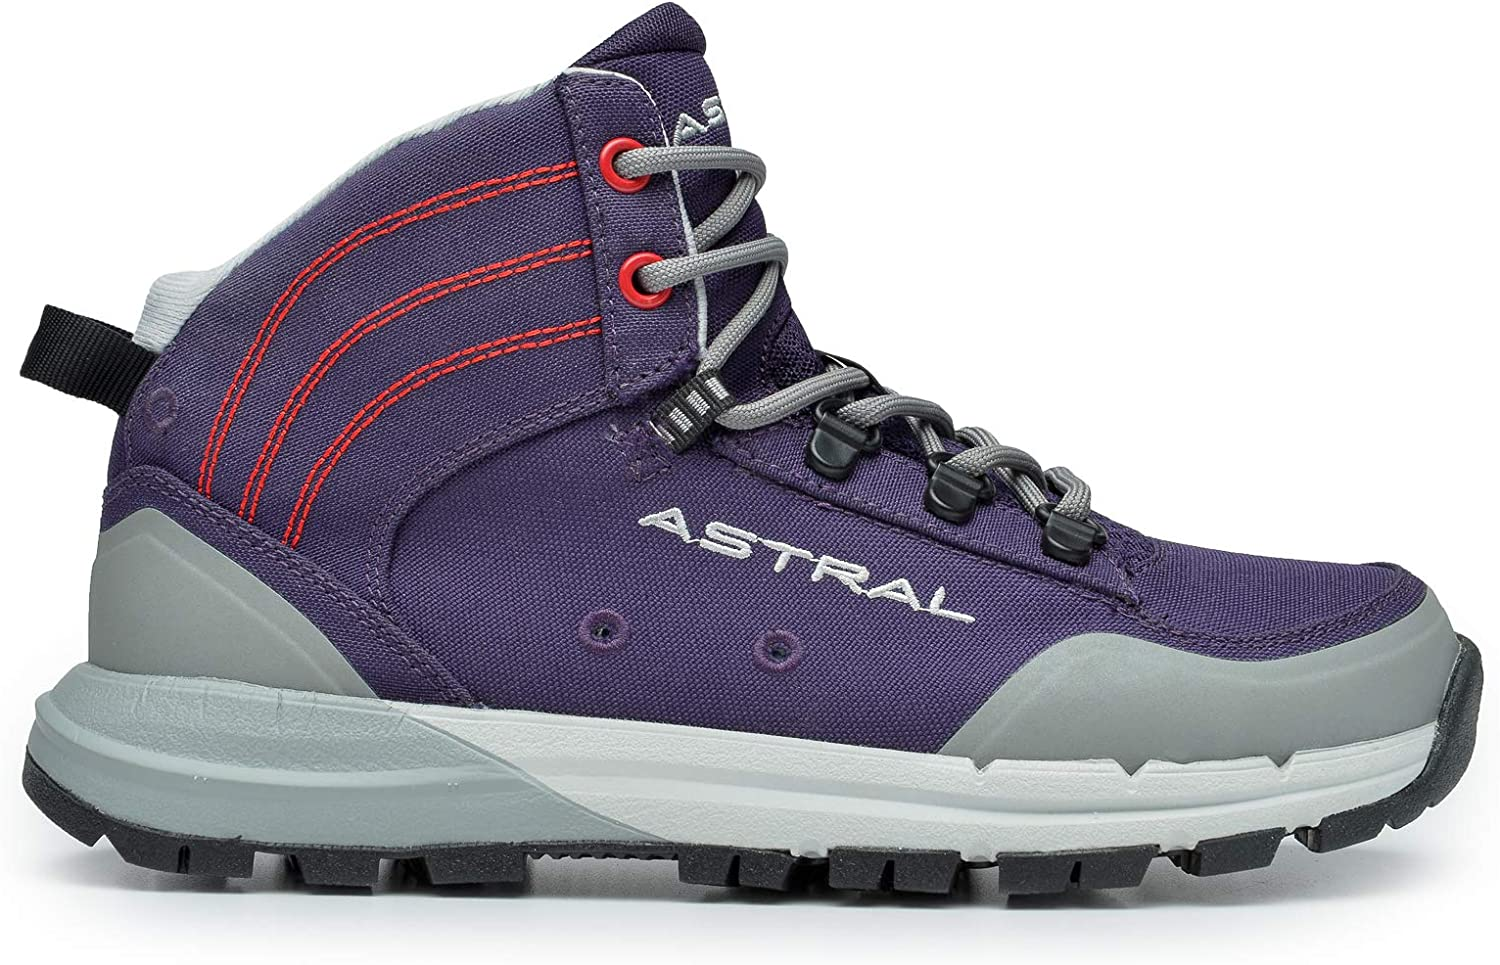 Made for Camping and Backpacking Astral Womens TR1 Merge Minimalist Hiking Boots Quick Drying and Lightweight